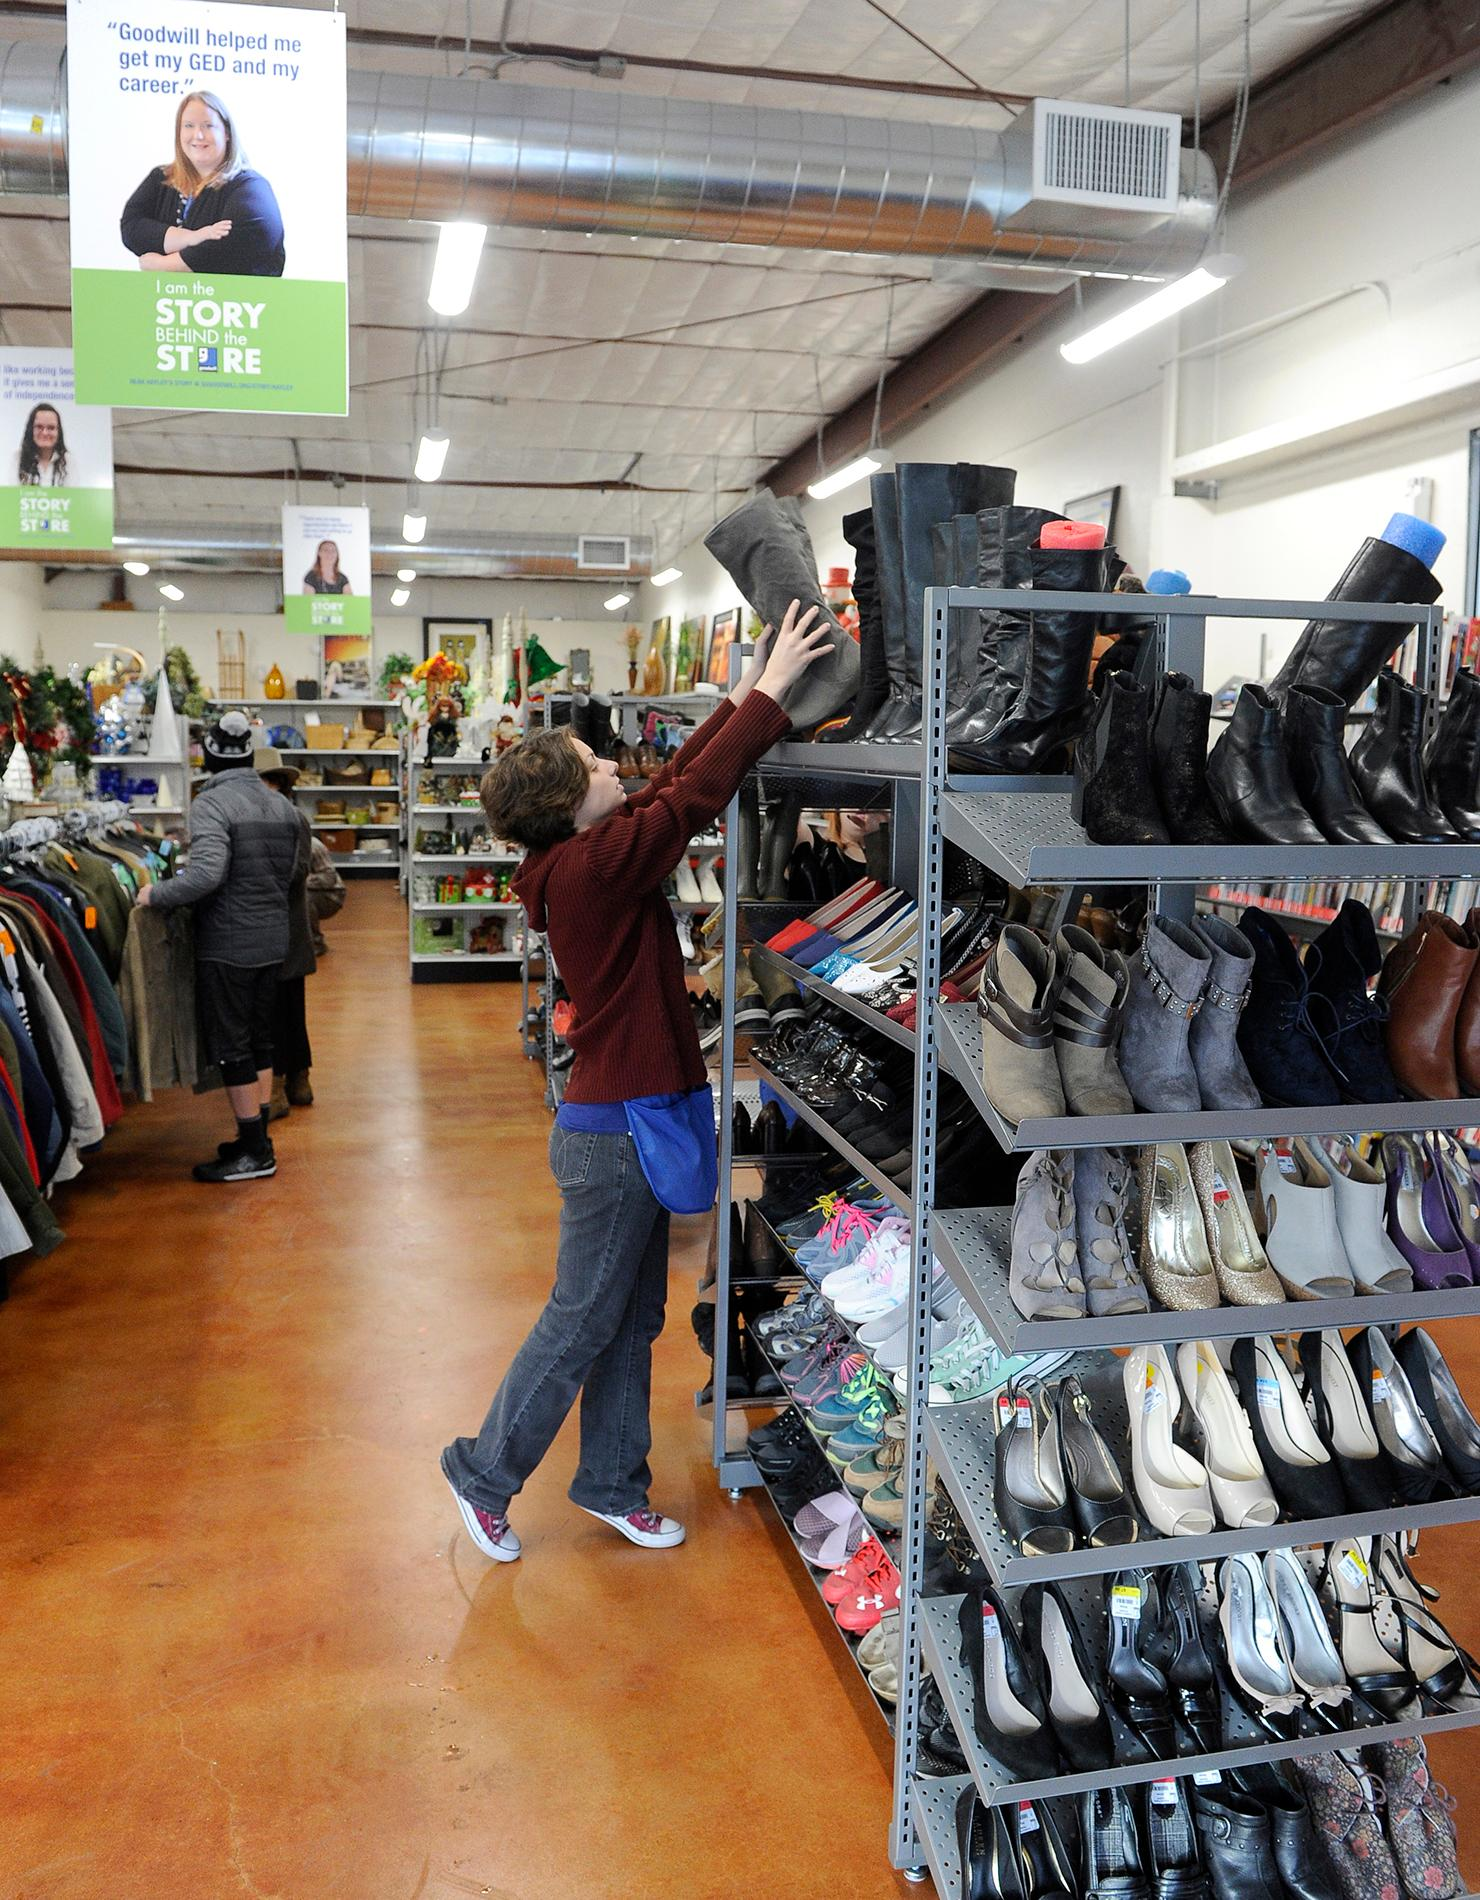 Andy Atkinson / Daily TidingsStore employee Caley Obrien organizes boots at the newly remodeled Goodwill during the reopening Friday morning.